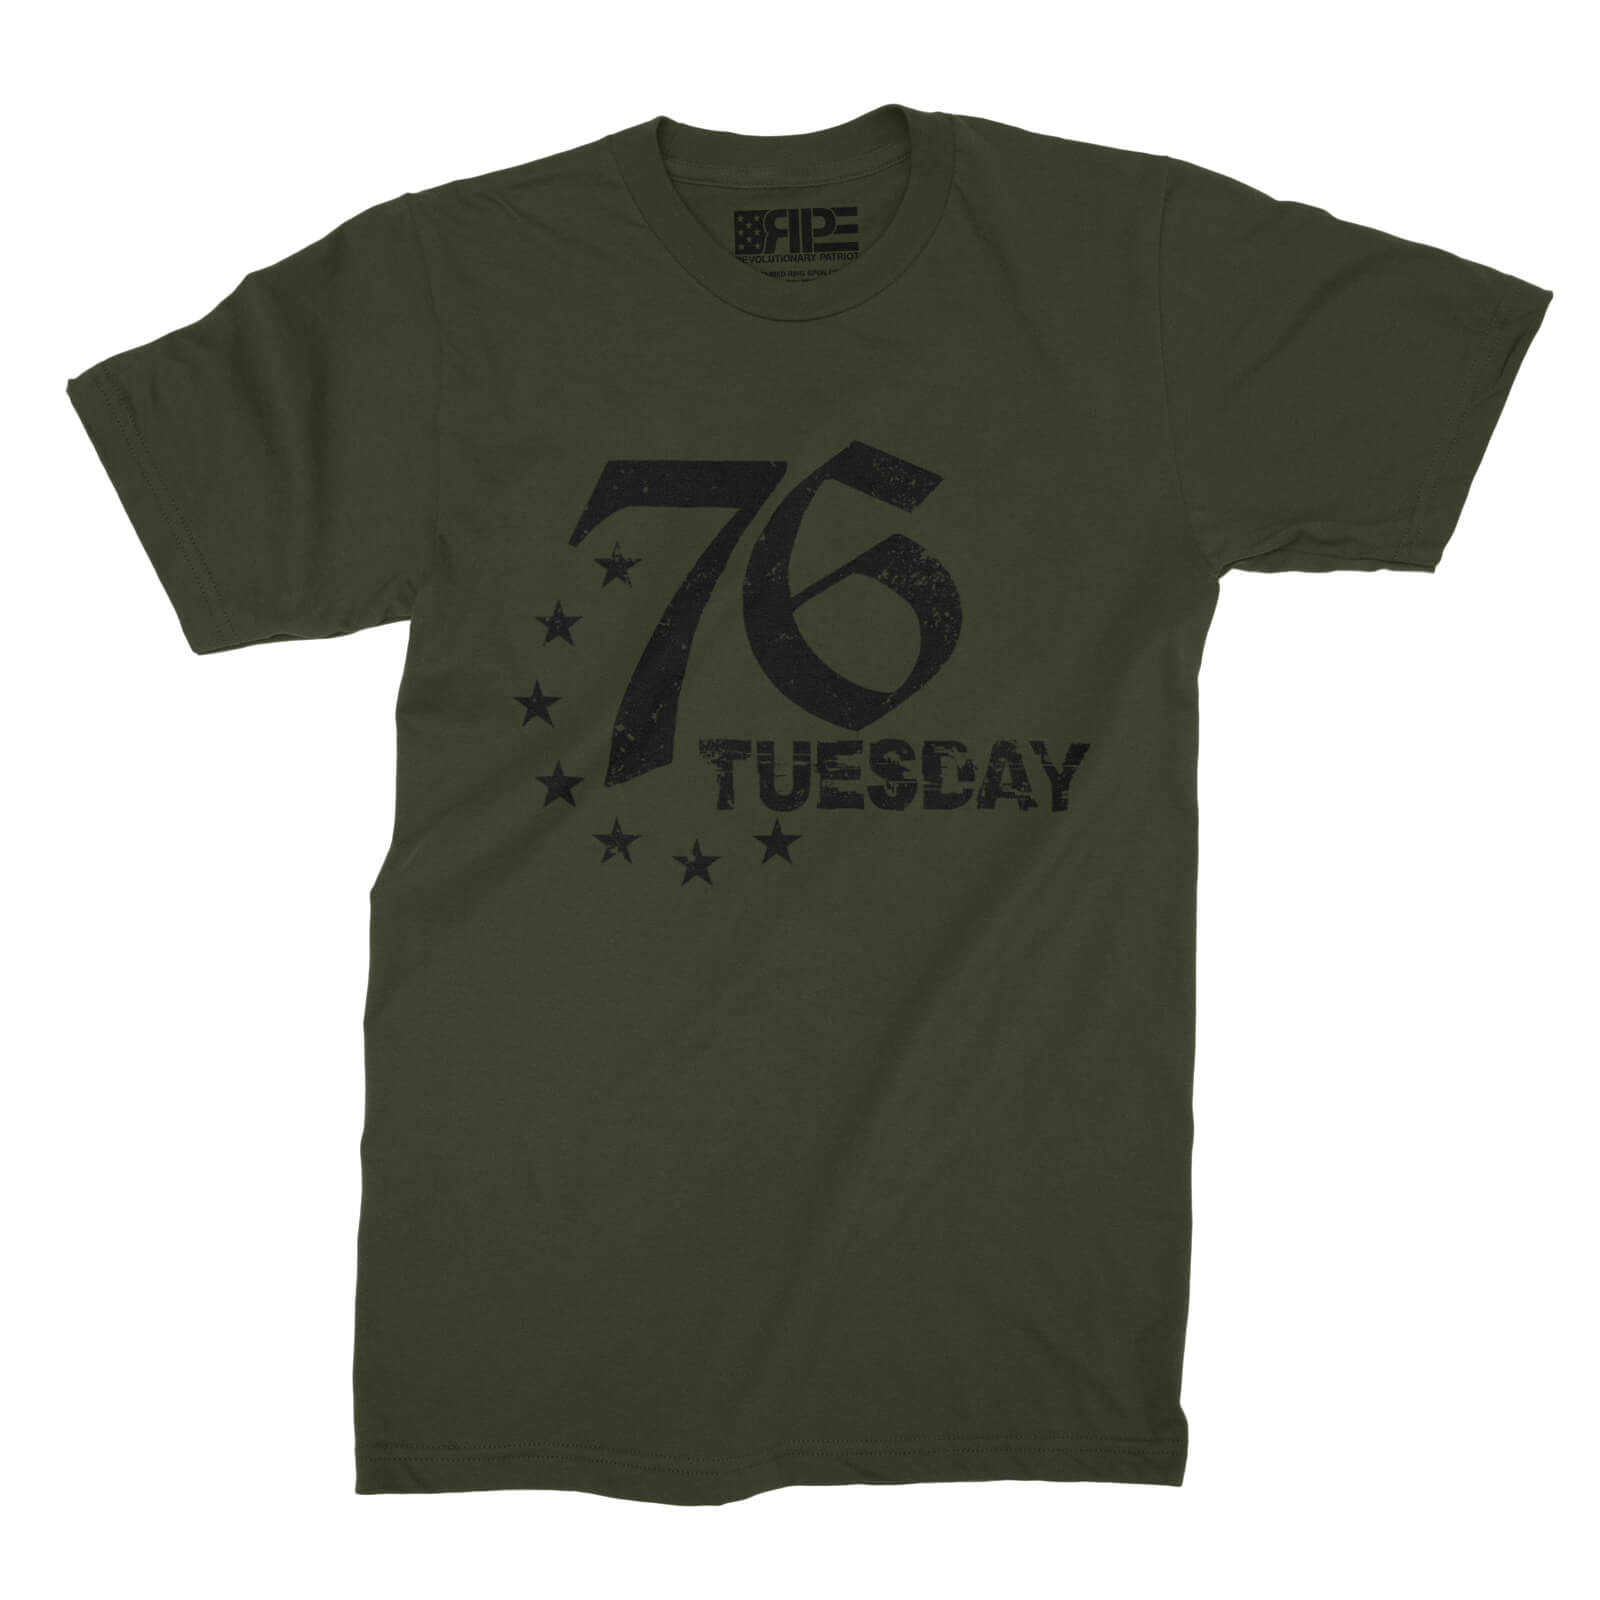 76 Tuesday (Army)